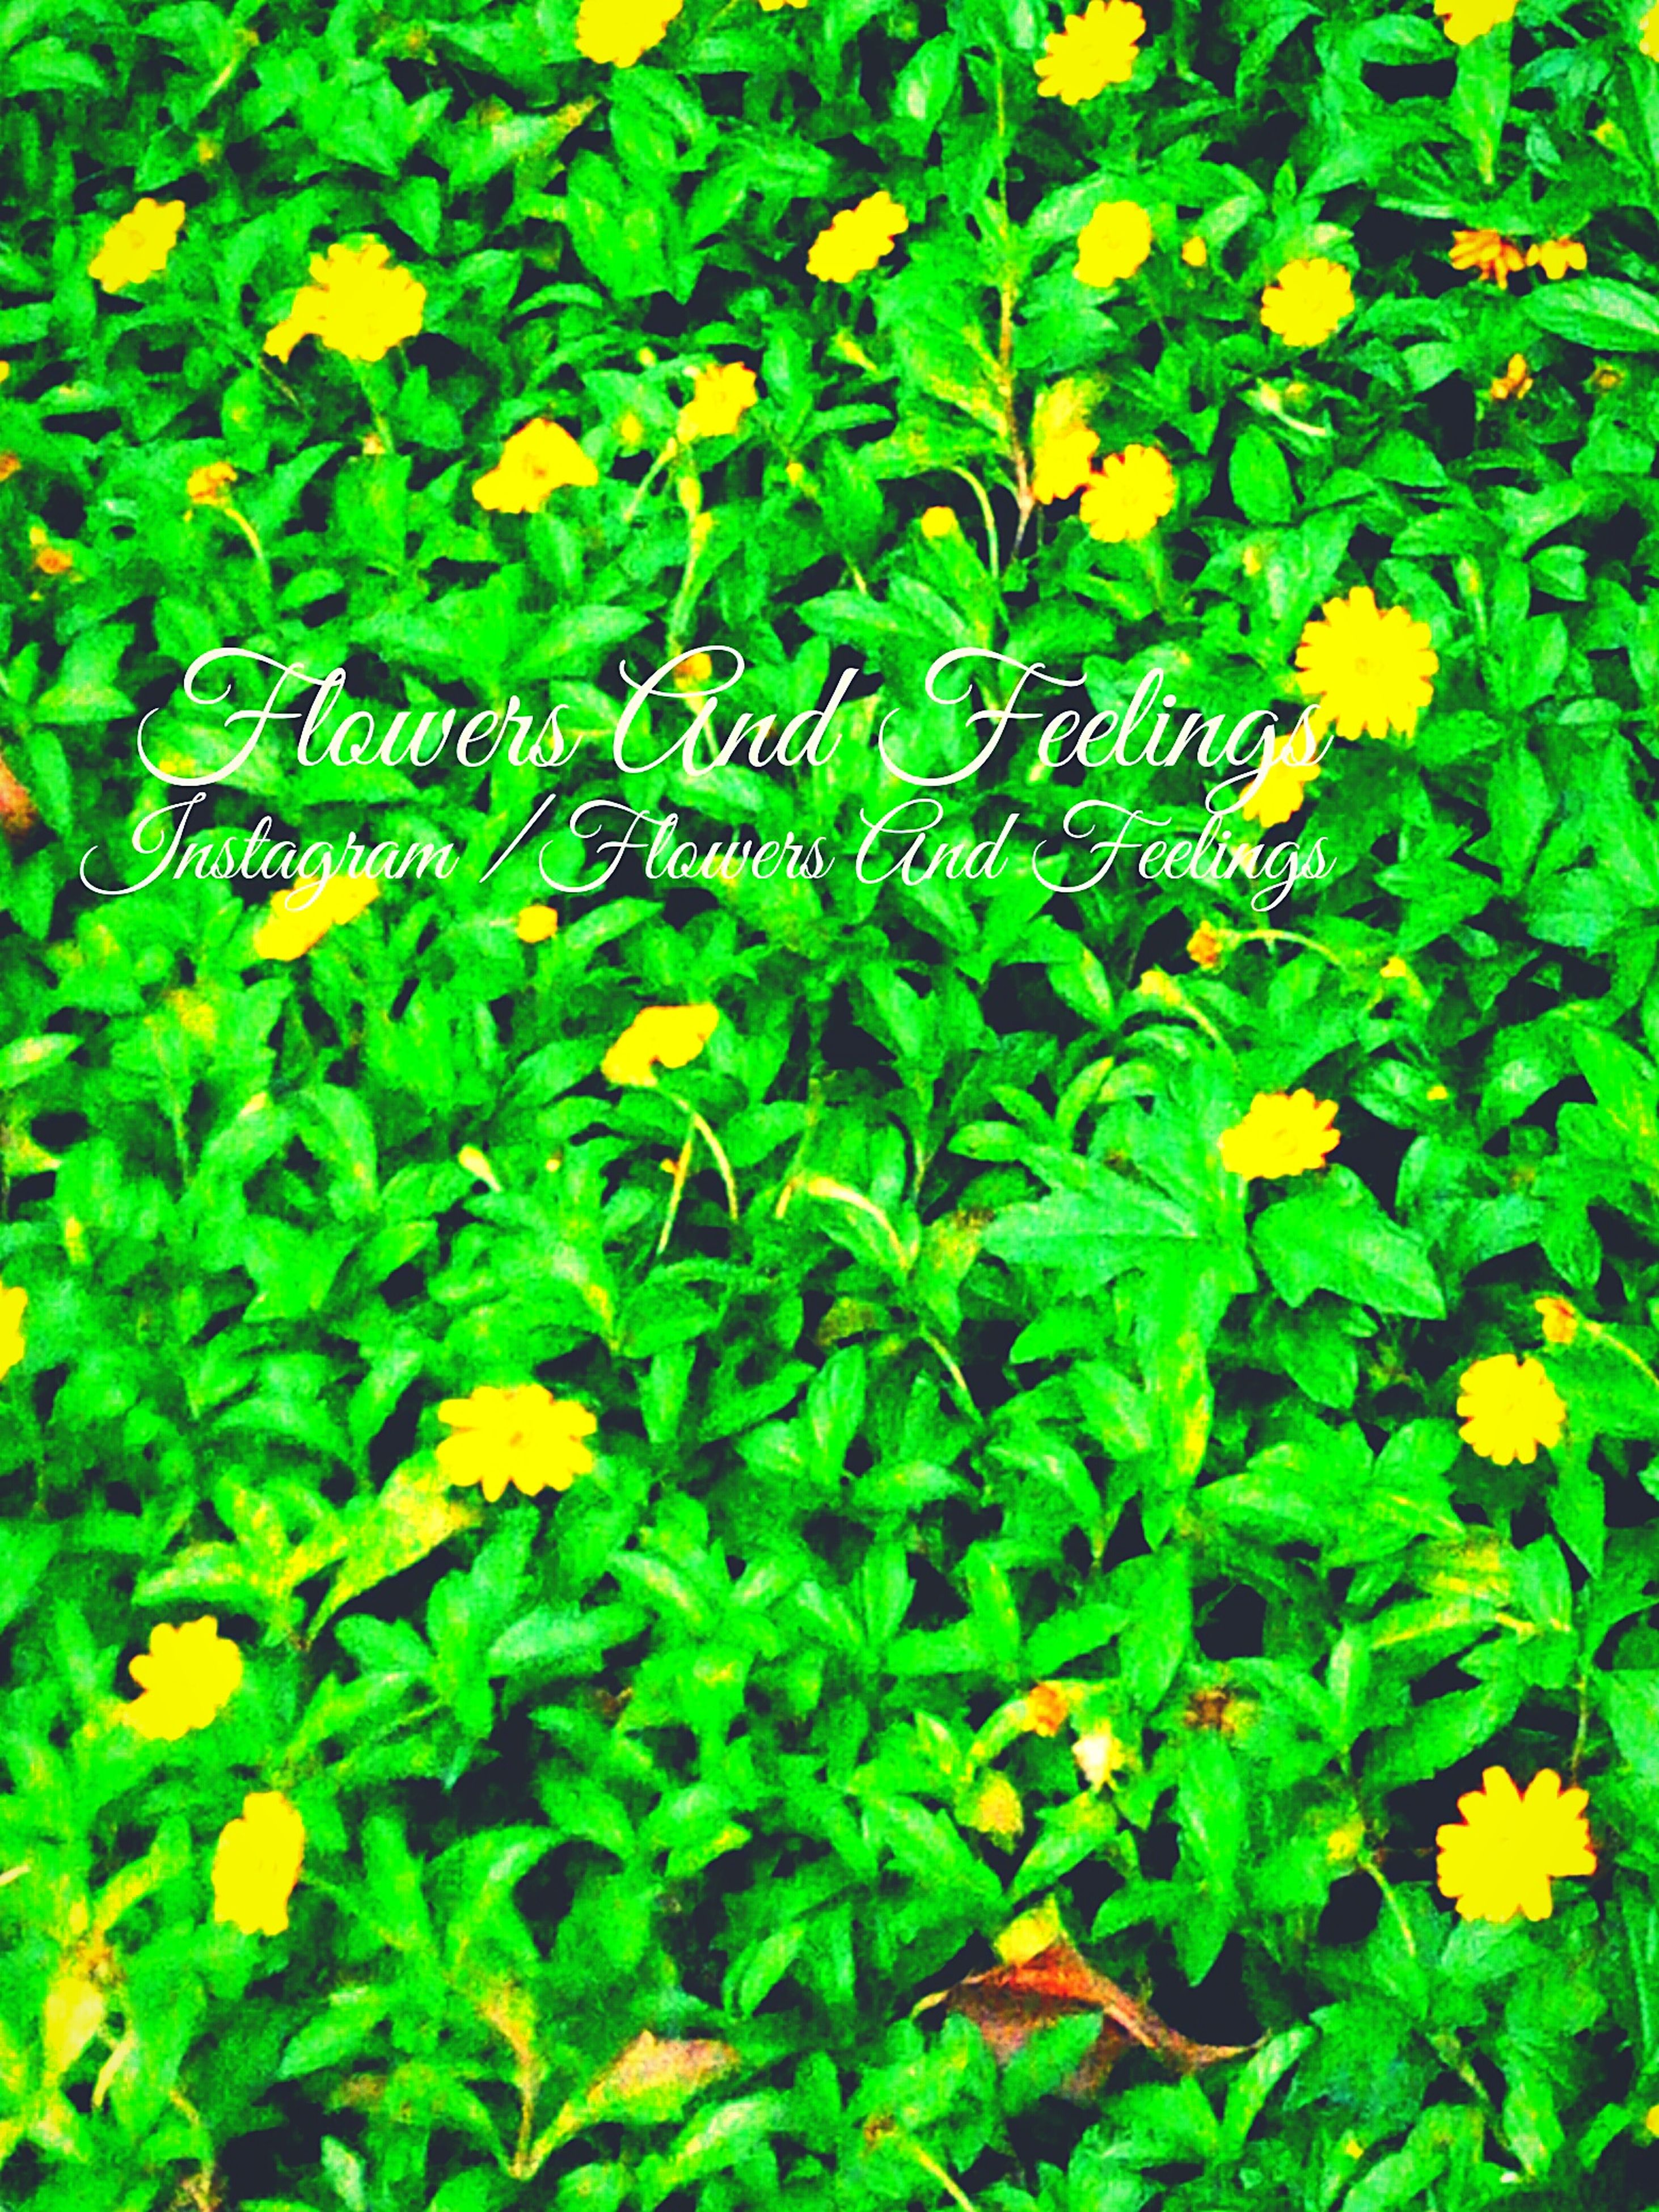 green color, leaf, growth, plant, high angle view, yellow, nature, full frame, freshness, beauty in nature, text, backgrounds, day, field, flower, outdoors, abundance, green, leaves, lush foliage